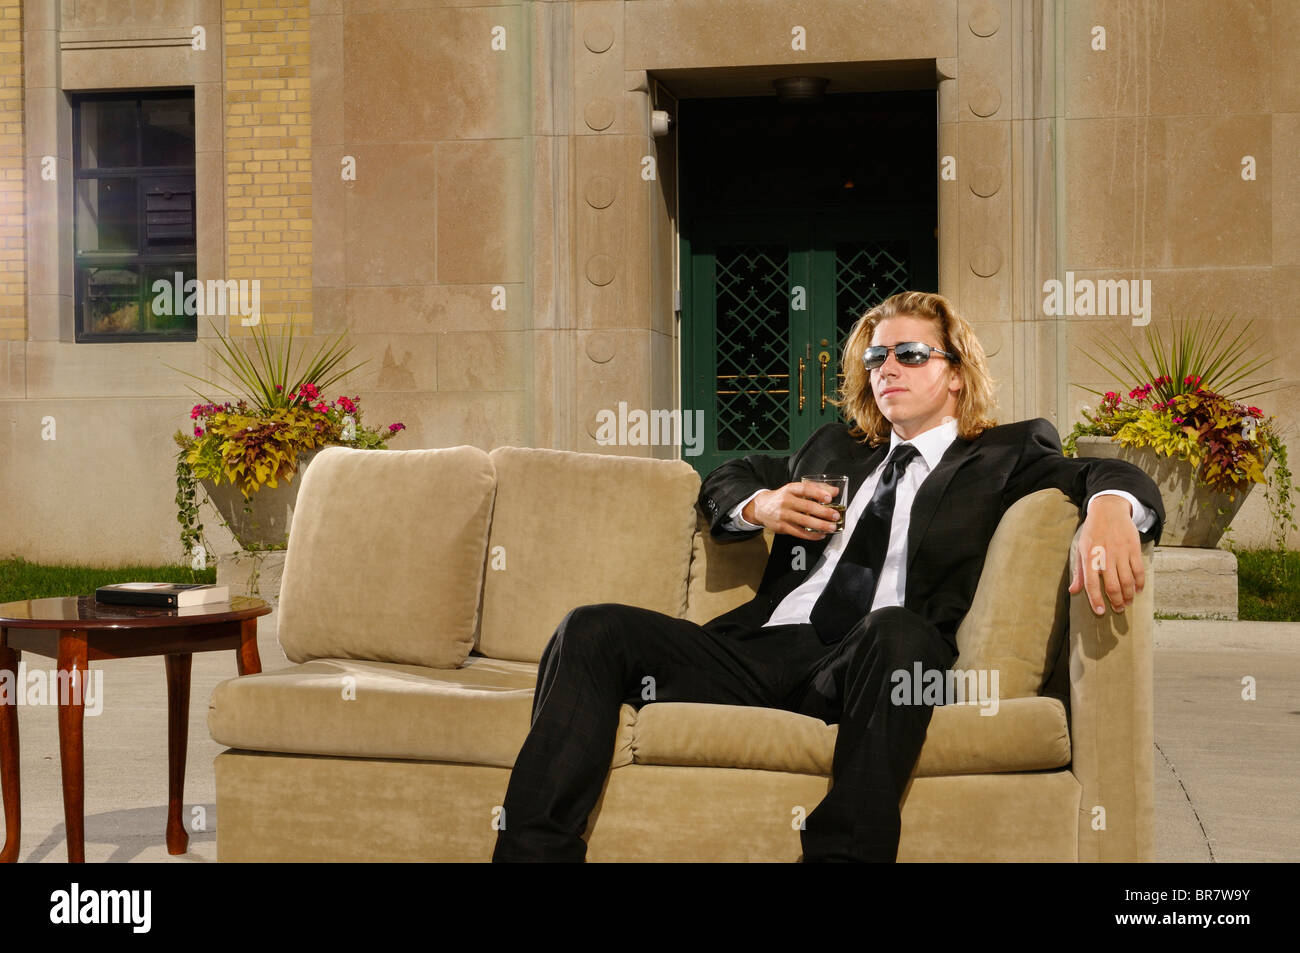 wealthy-young-man-in-suit-sitting-on-a-c